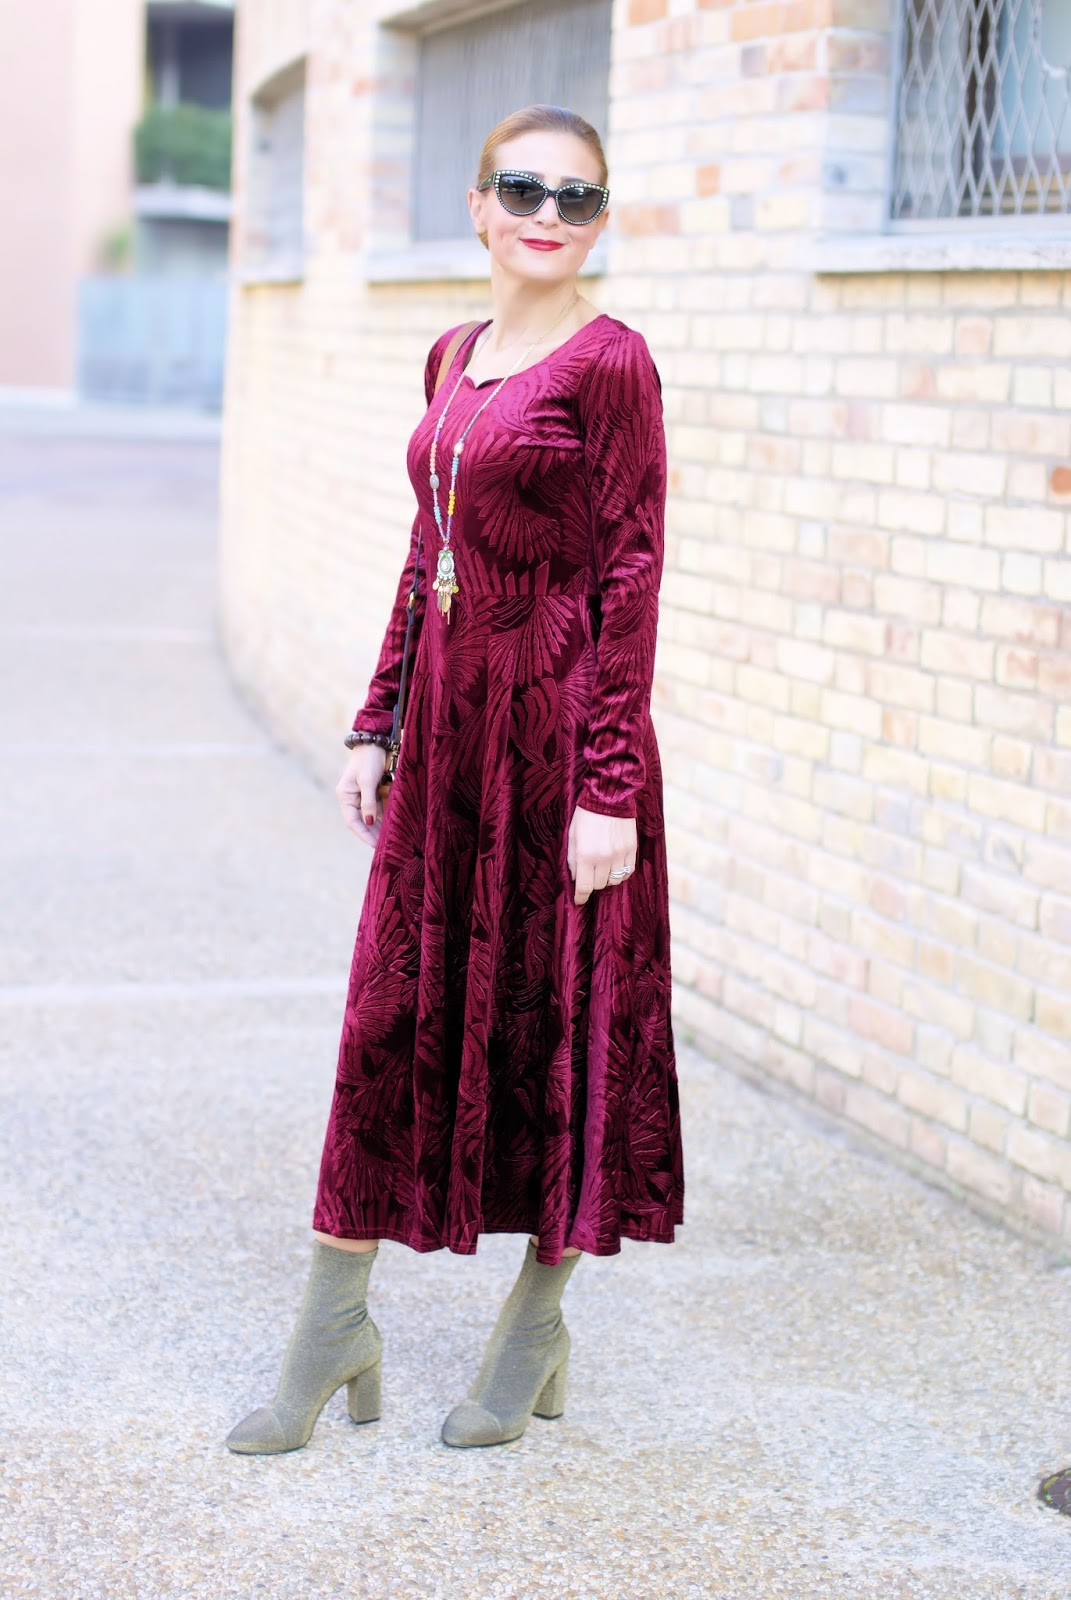 Metisu red velvet maxi dress & Le Silla sock heels: 70s vibes on Fashion and Cookies fashion blog, fashion blogger style